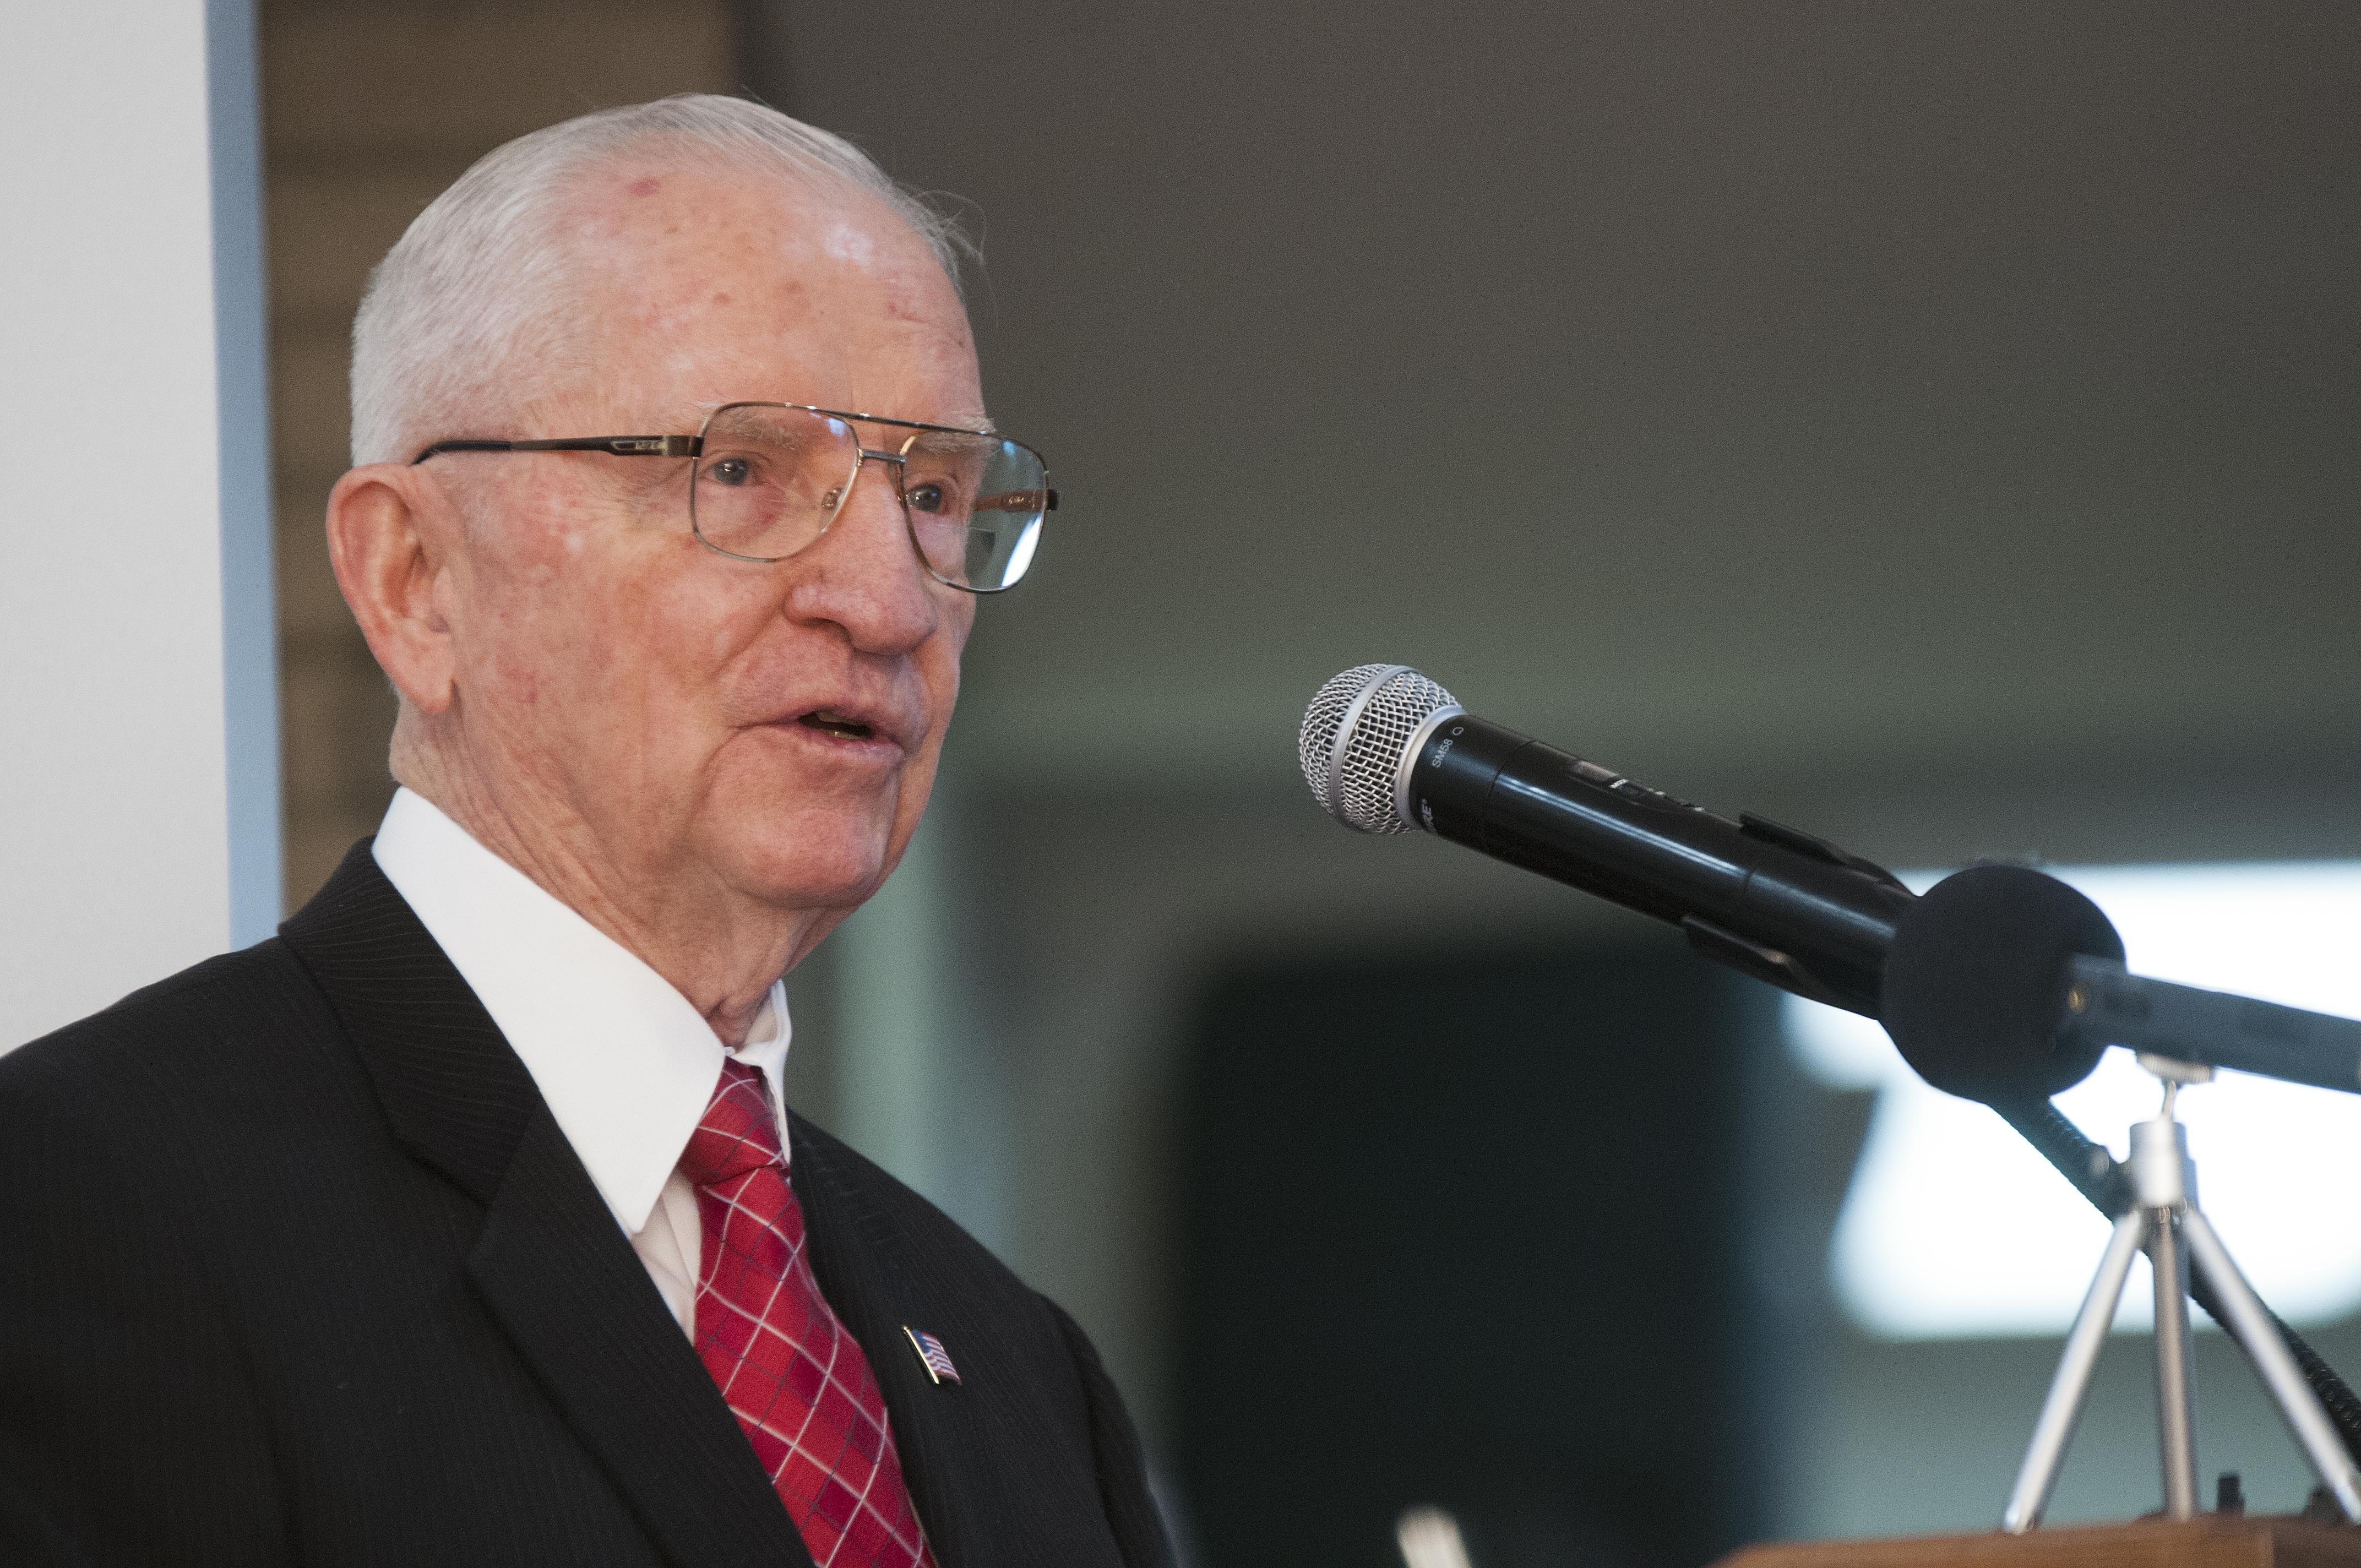 ross perot - photo #17